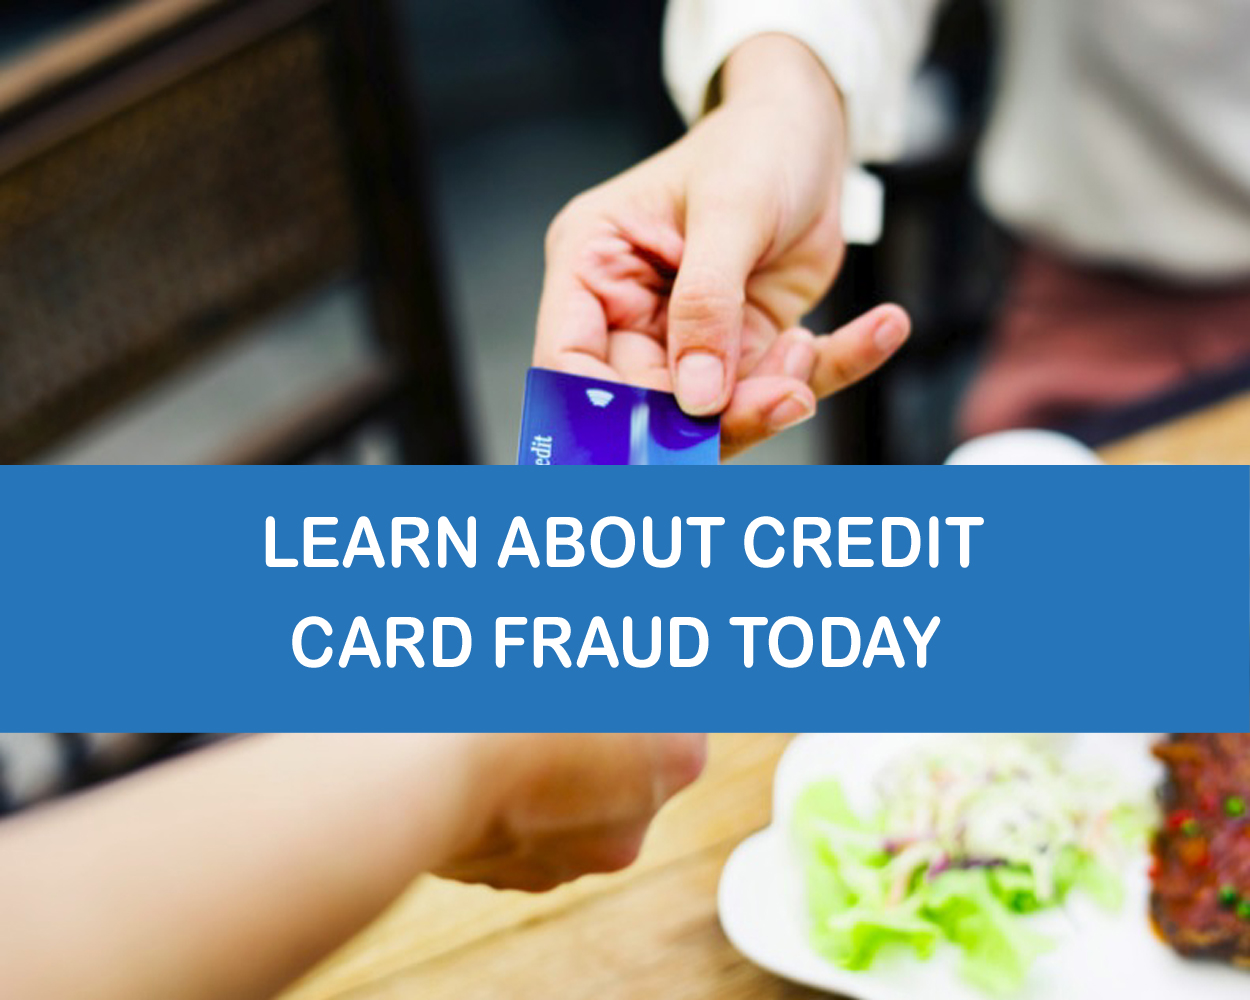 To learn about credit card fraud click here